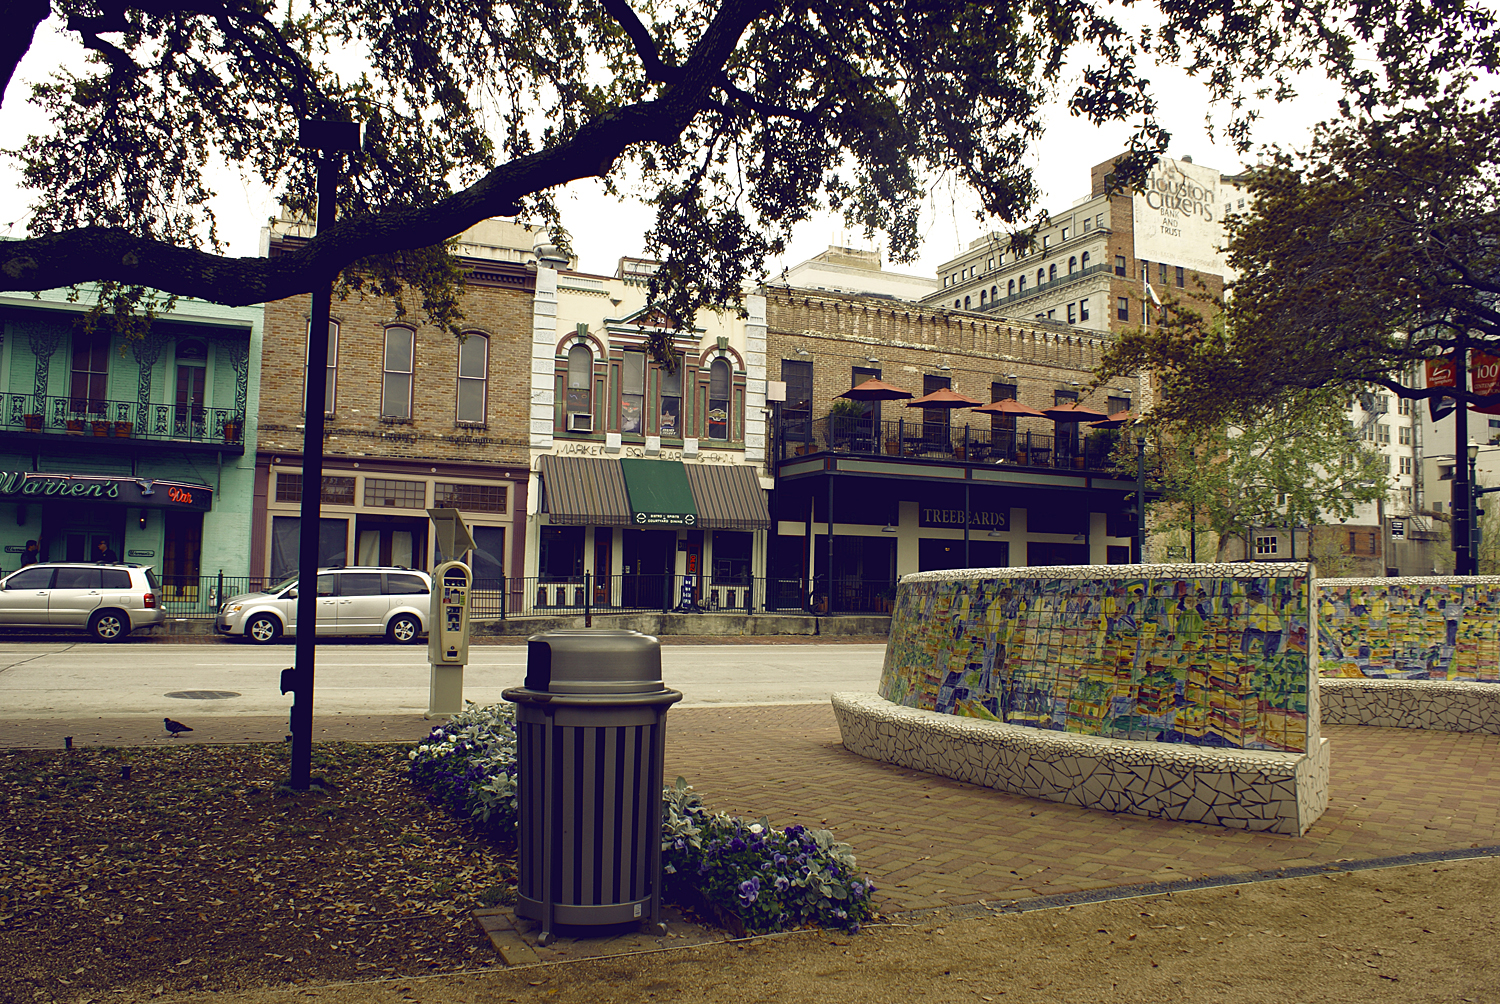 Personal_MarketSquare_Houston_3_28_14.jpg